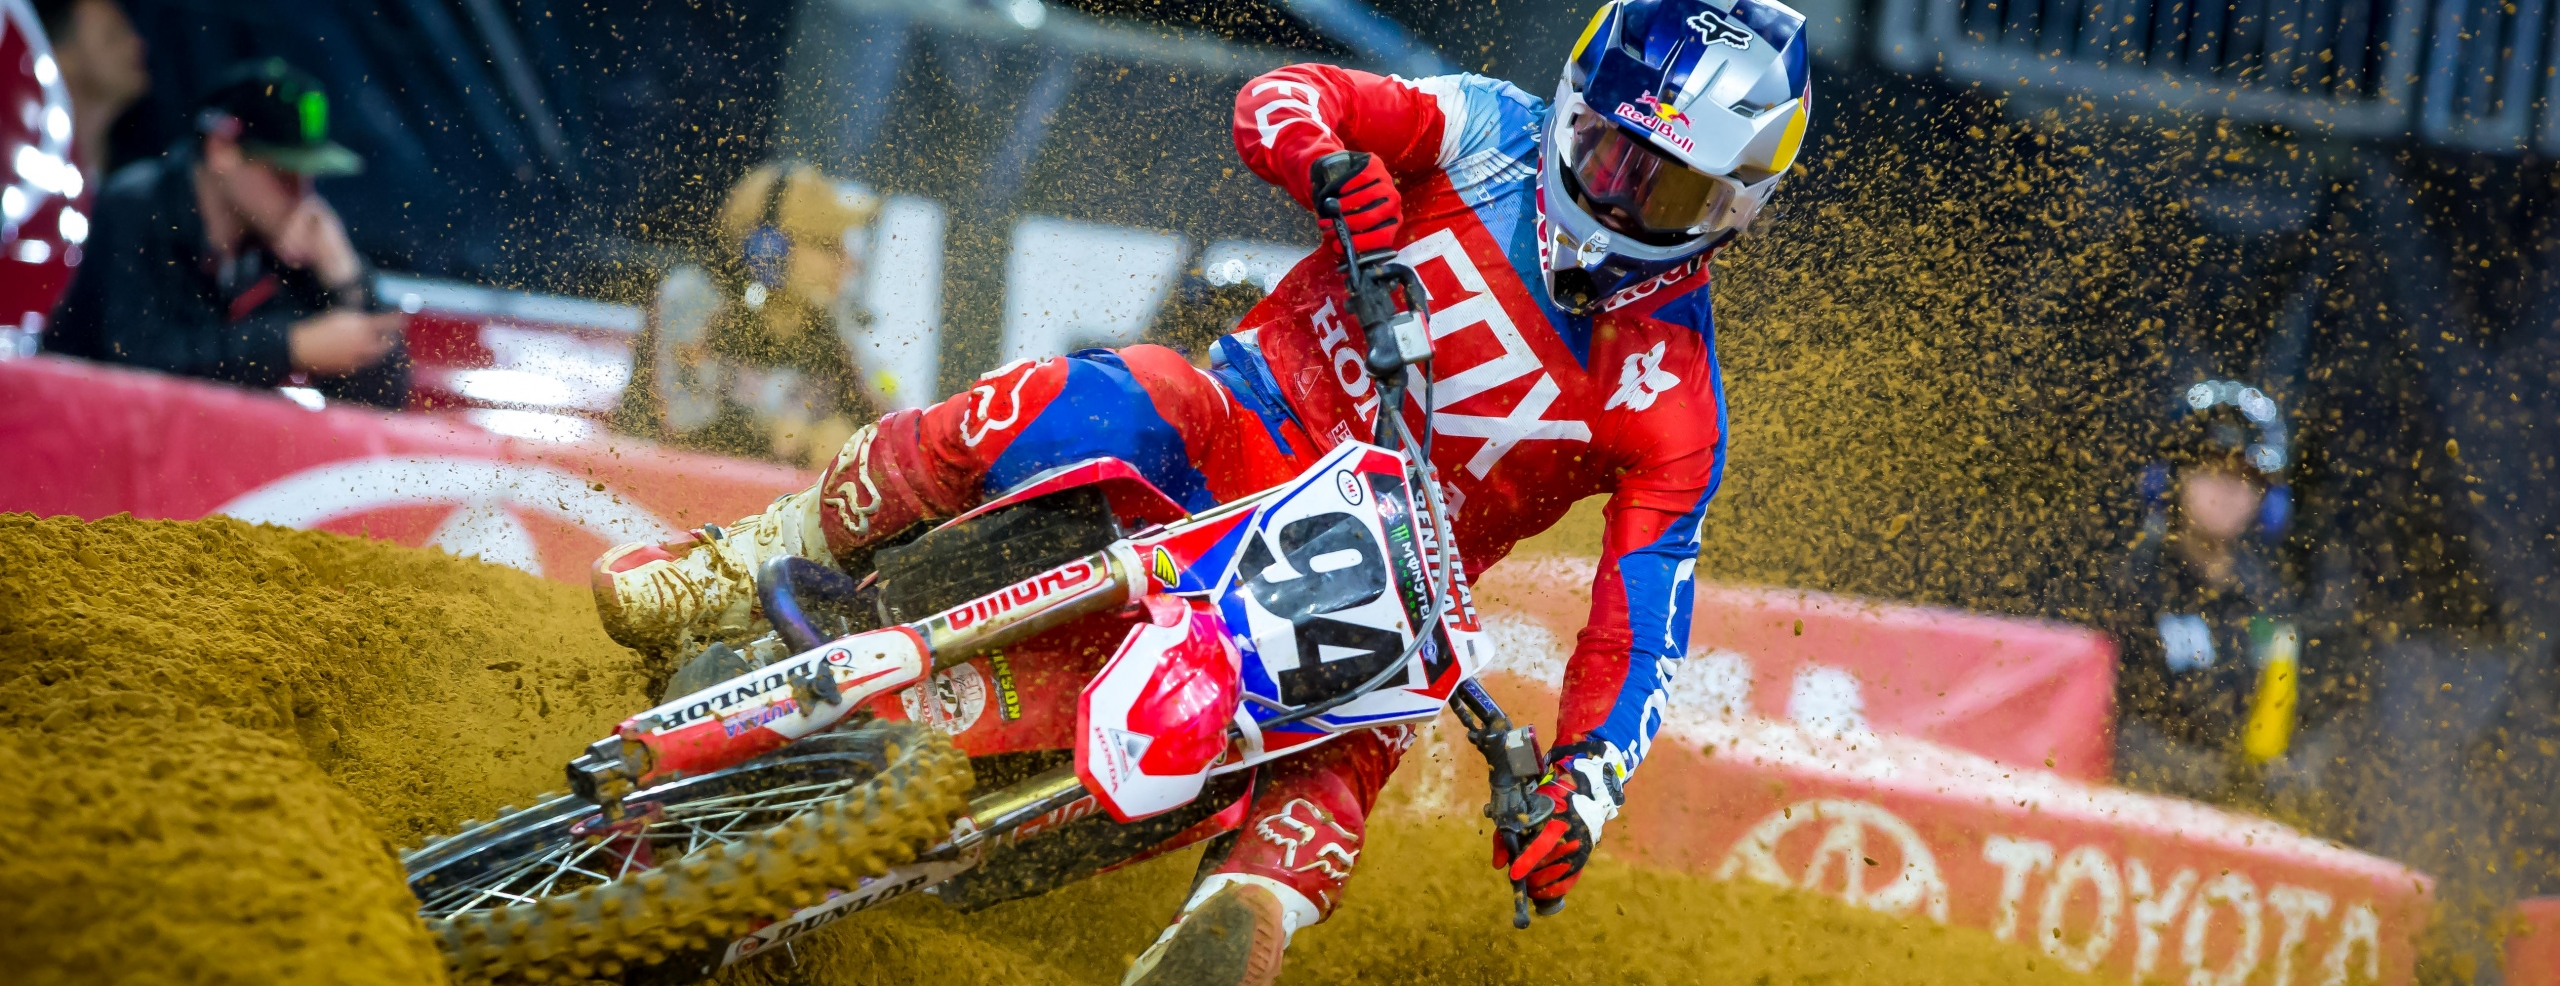 Second Place for Roczen at Houston Supercross